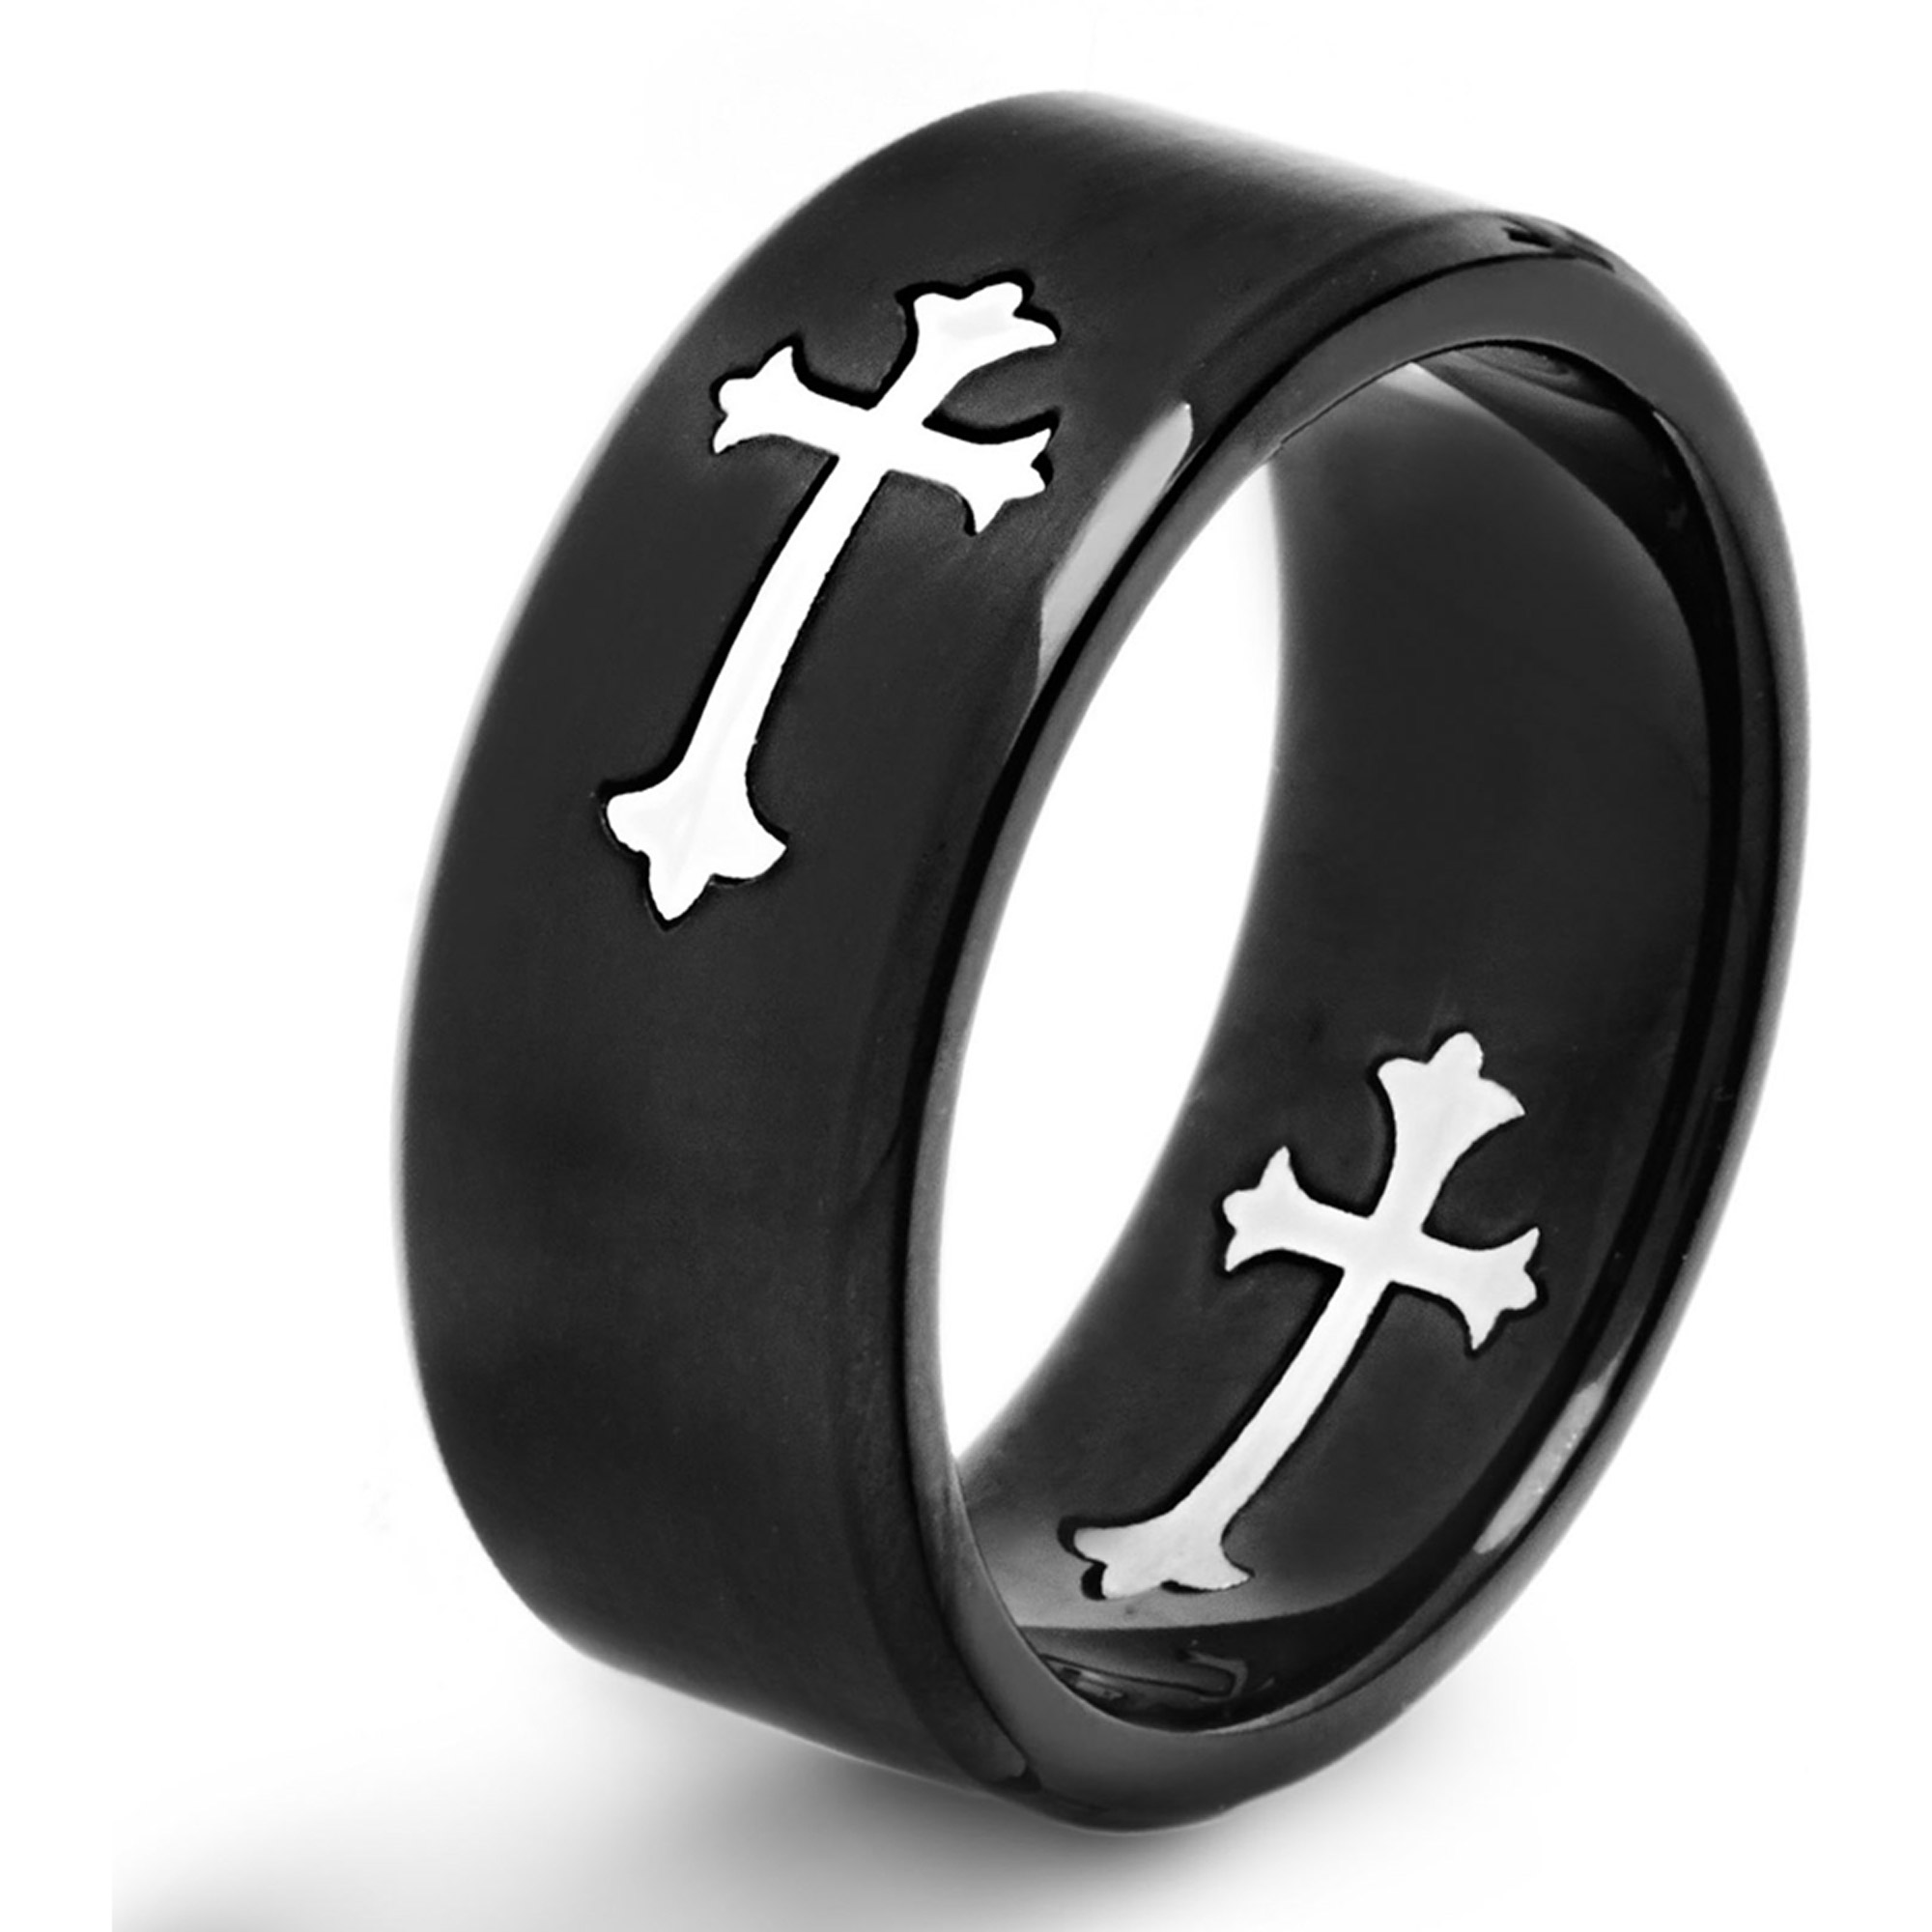 Crucible Stainless Steel Black-Plated Brushed Cutout Cross Ring